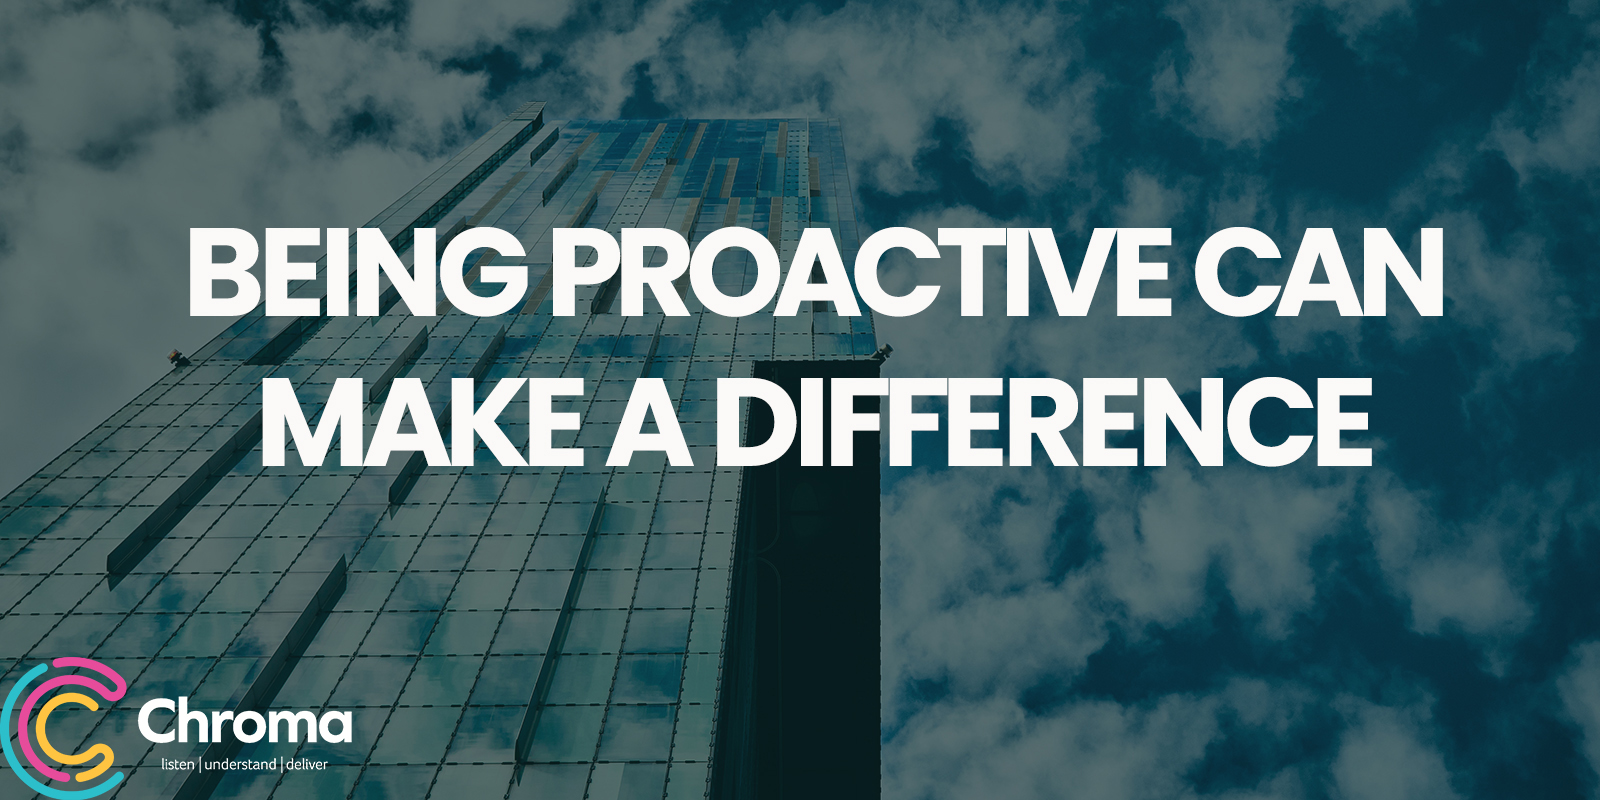 Being proactive can make a difference